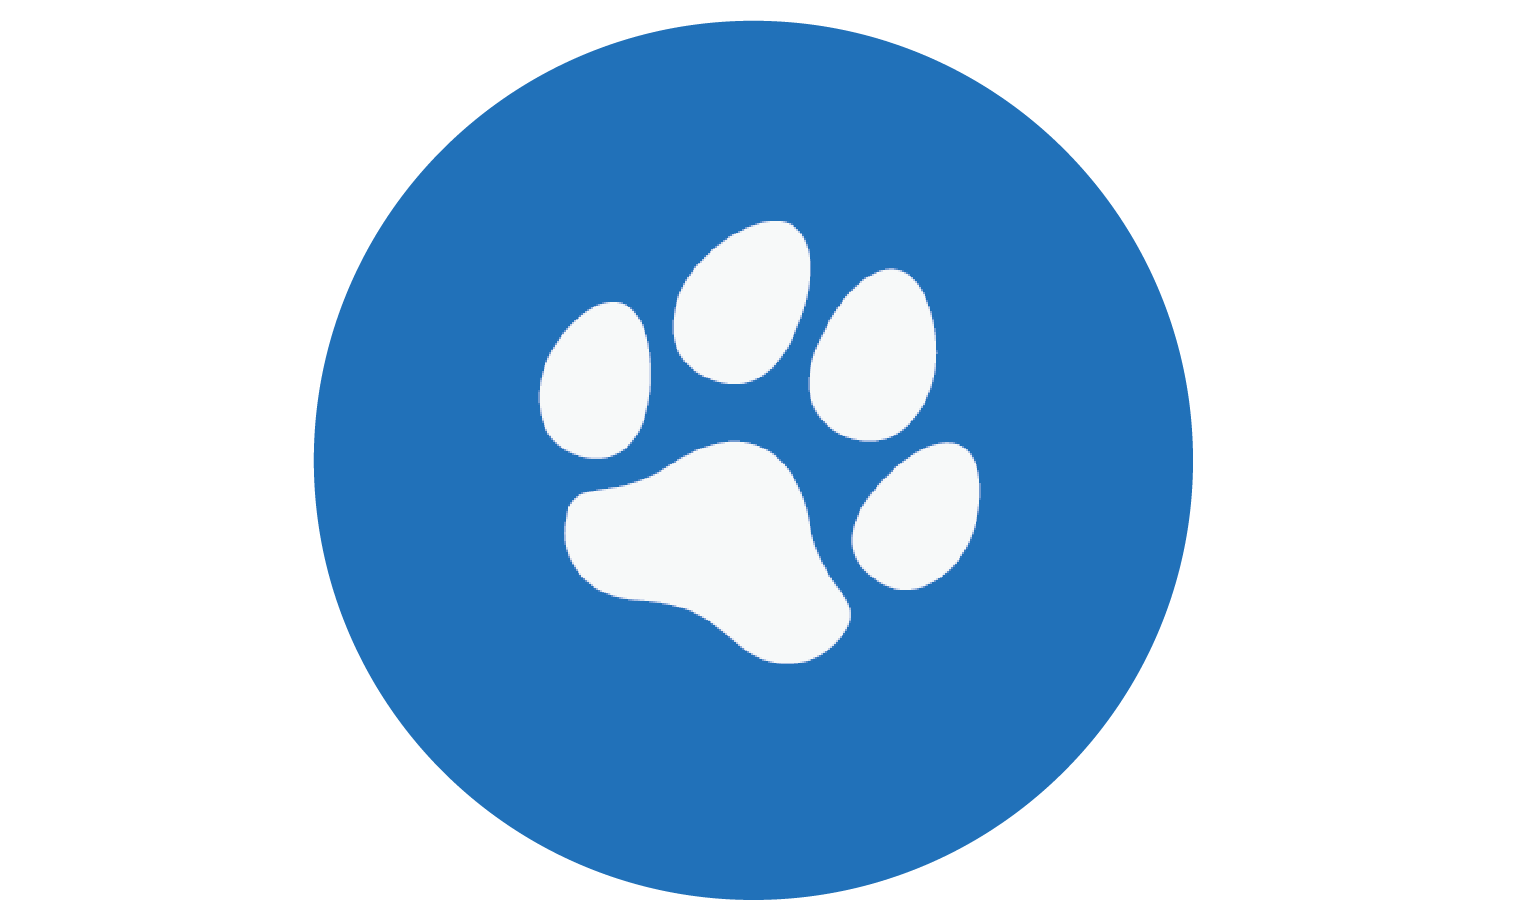 paw print within a blue circle